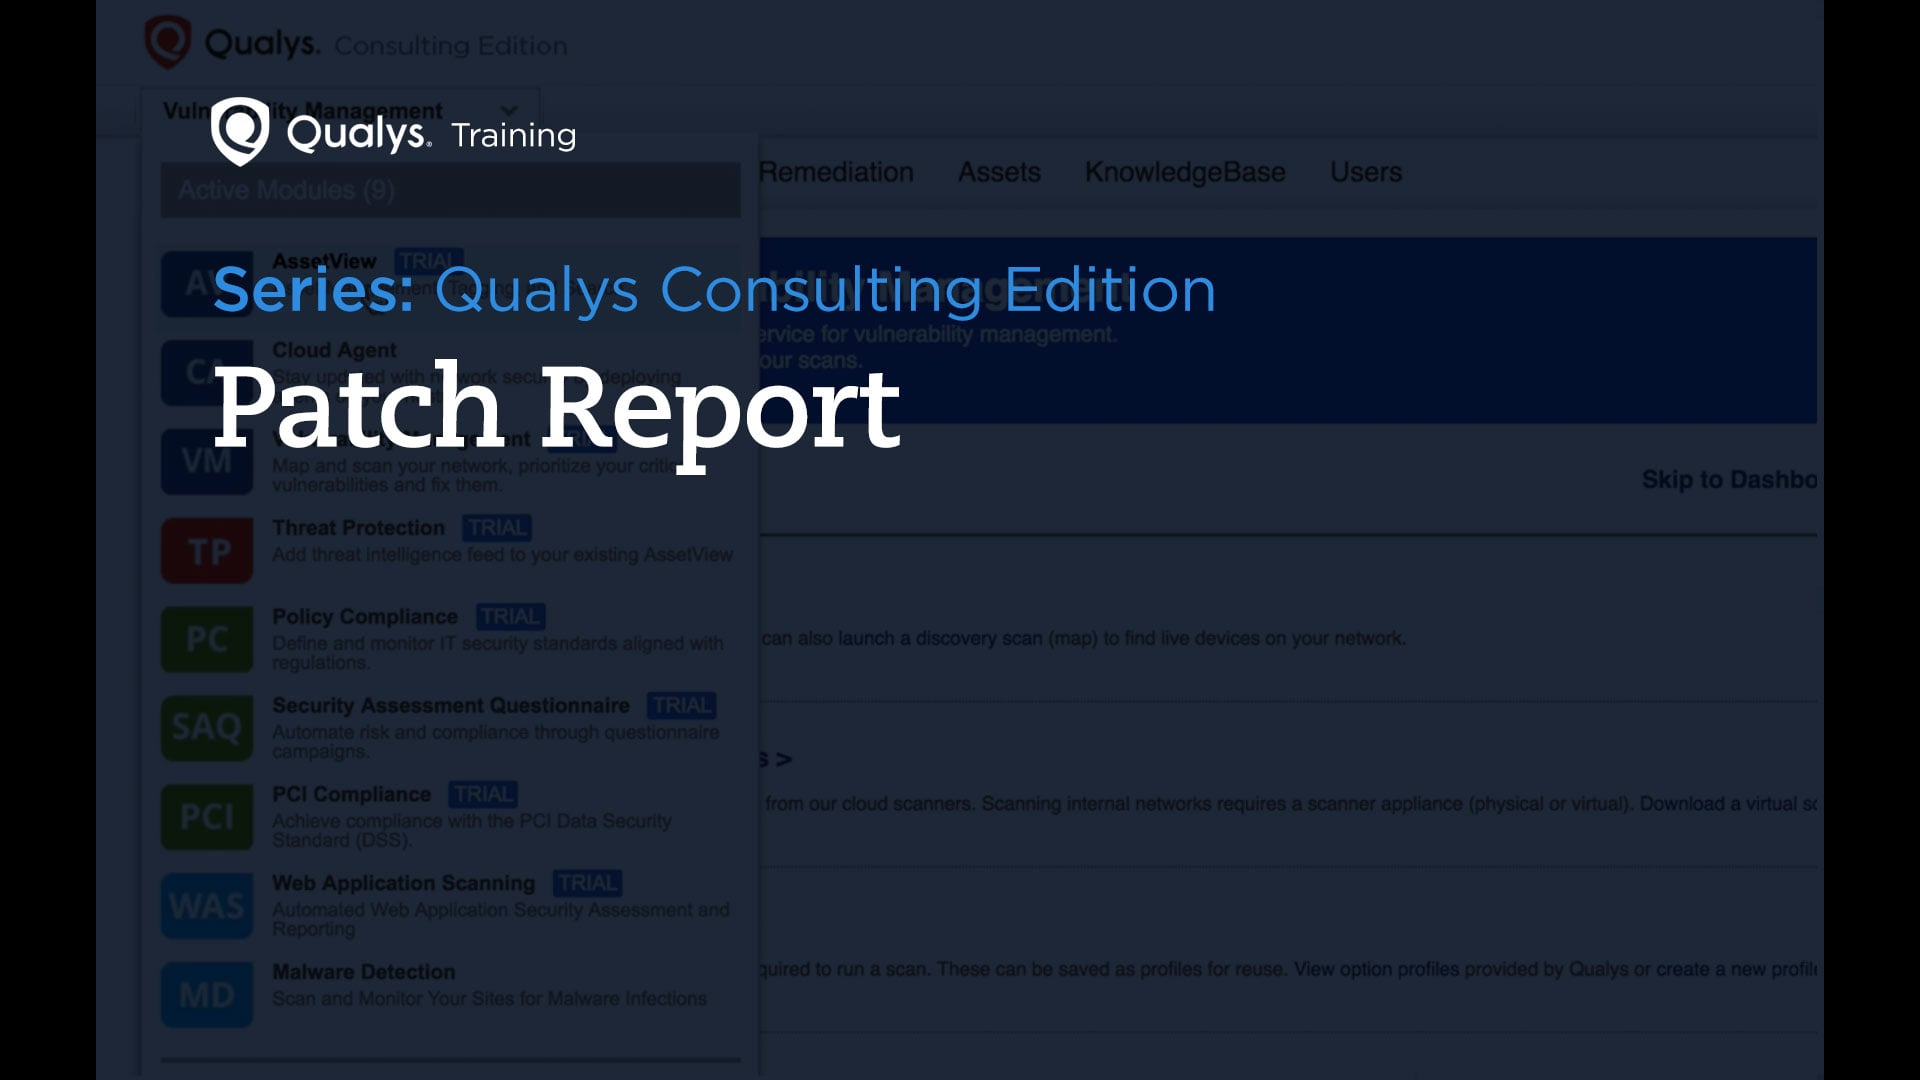 Patch Report - Qualys Consulting Edition